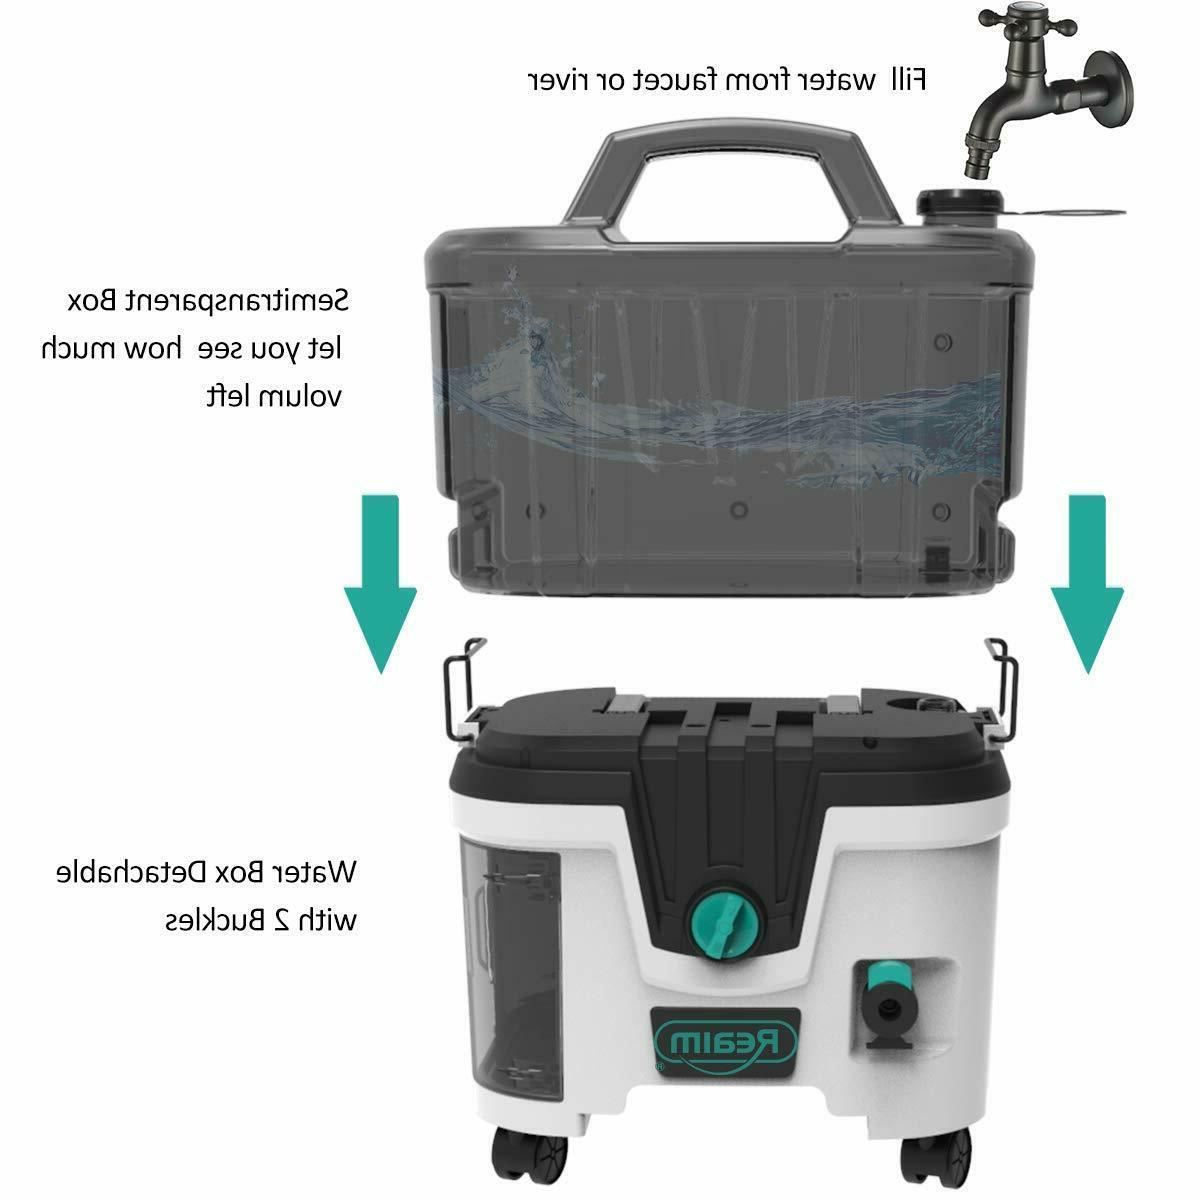 Realm ion 40V 4.0 Ah 1200 PSI GPM Washer